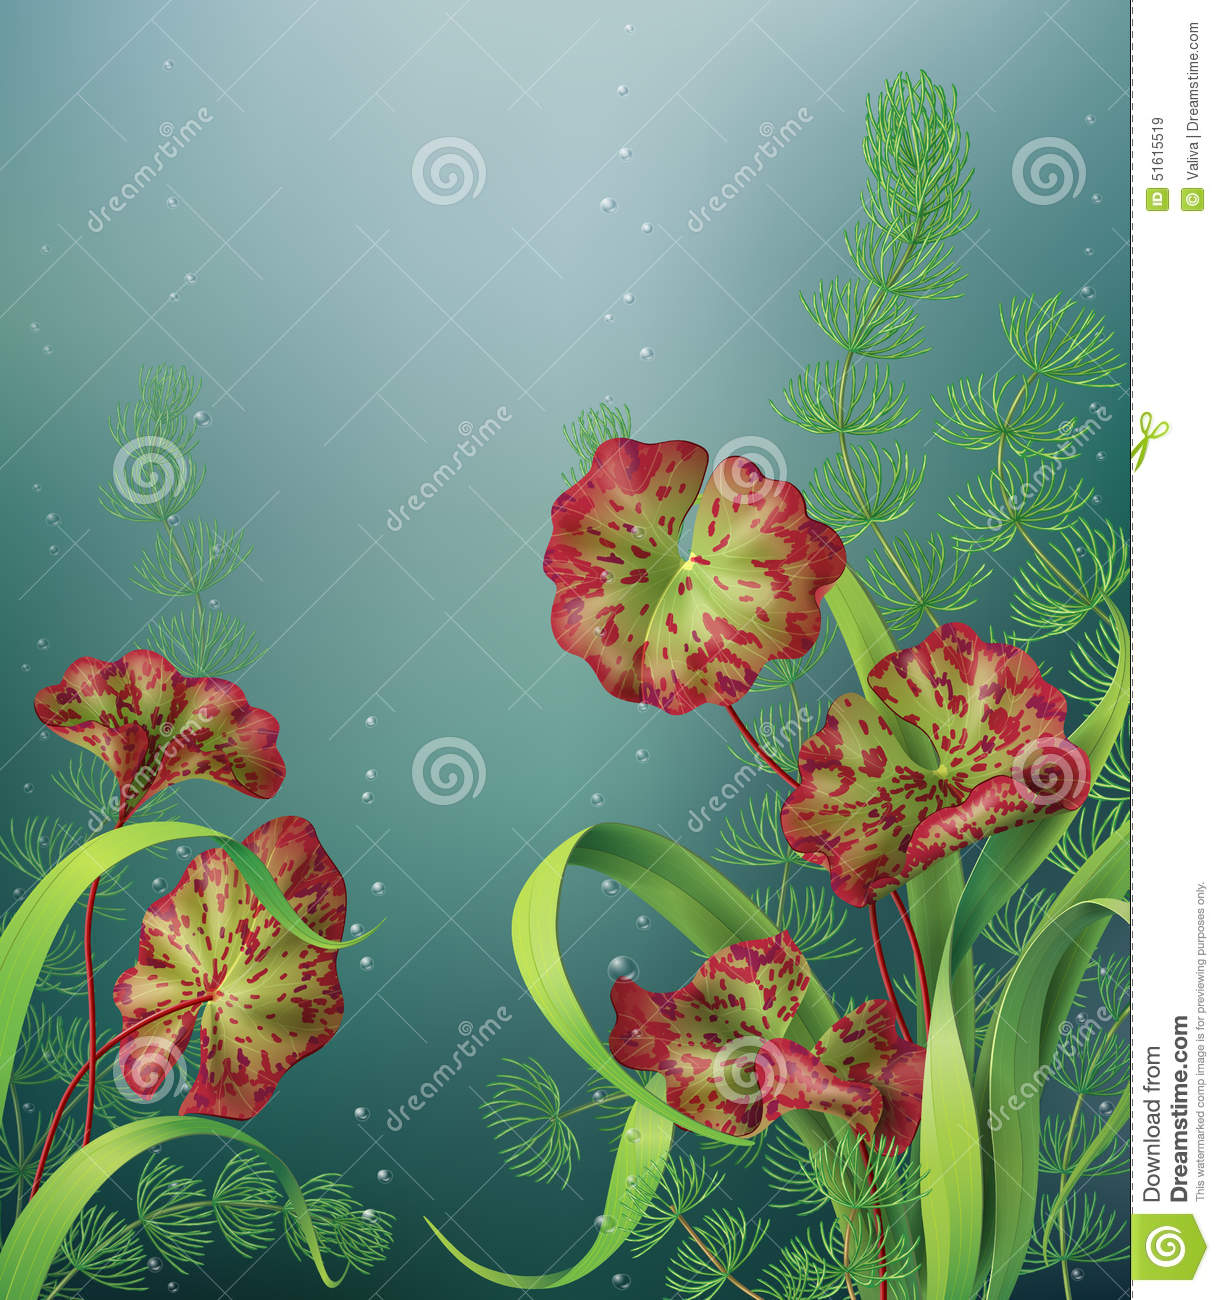 Underwater background with aquatic plants stock vector for Underwater pond plants